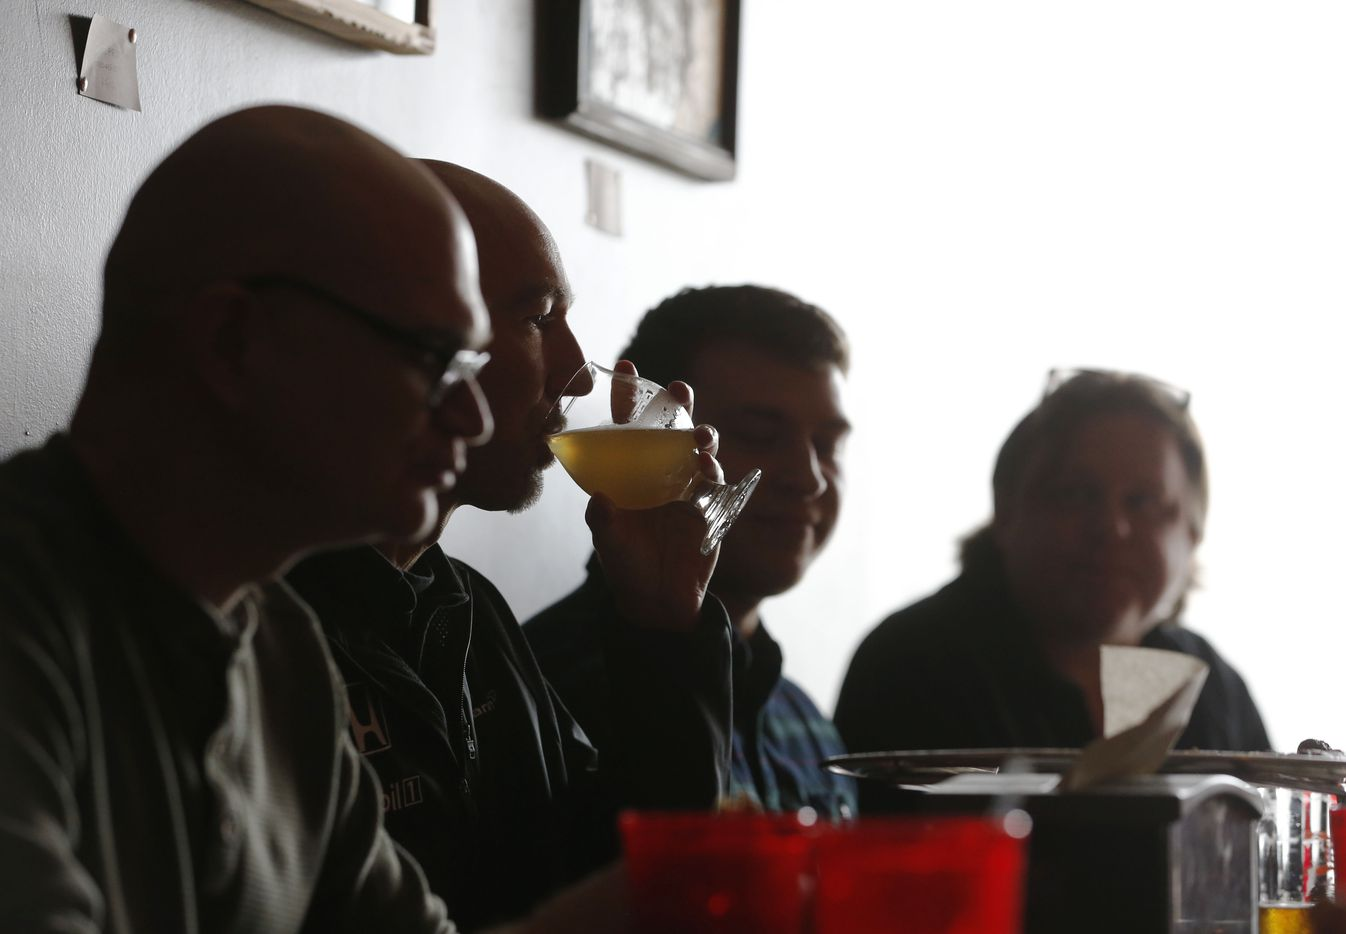 Darrell Caldwell (second from left)  drinks beer and eats with Ernest Adams (left), Jared Holeyfield (second from right) and Tony Jenkins (far right) at Austin Beer Garden Brewing Company.